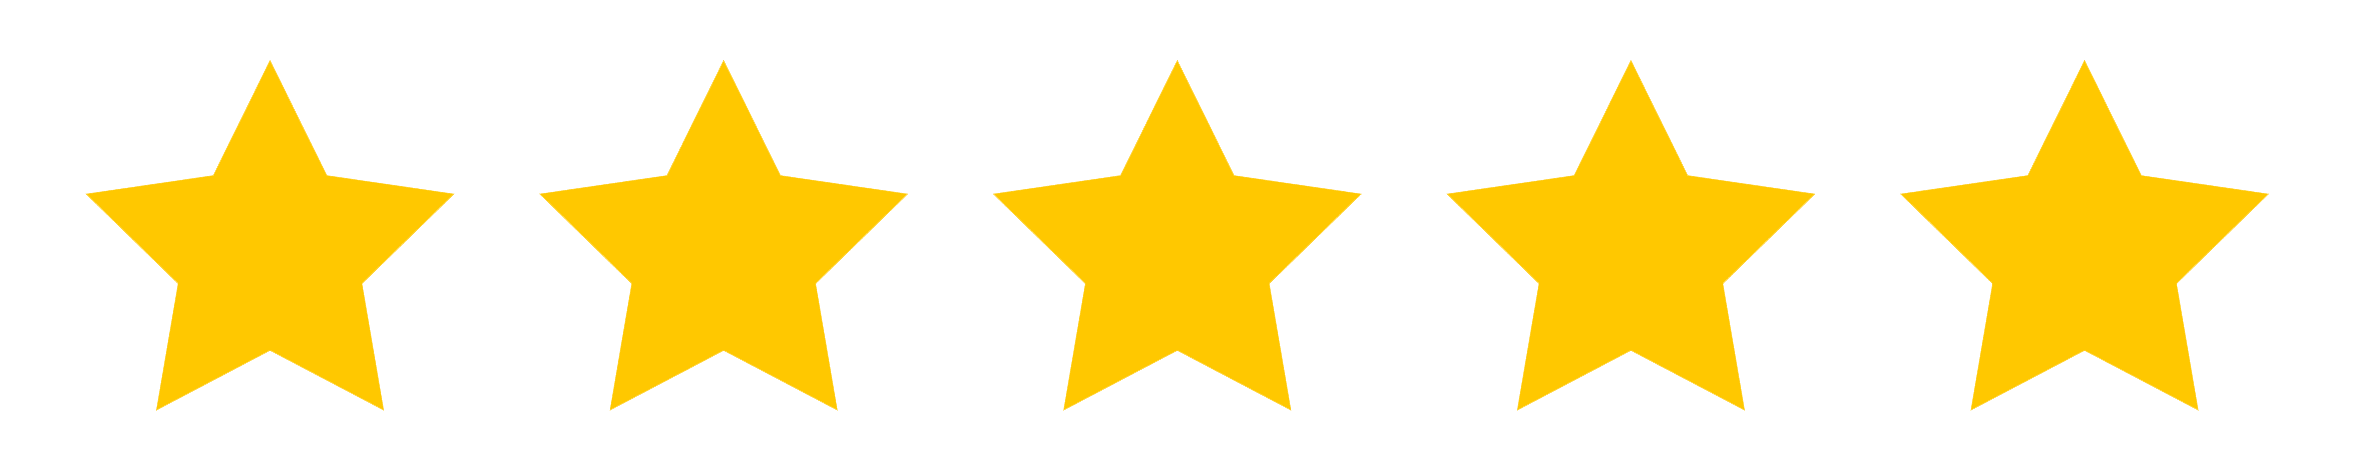 Reviews star rating for A-1 Self Storage in San Diego, California